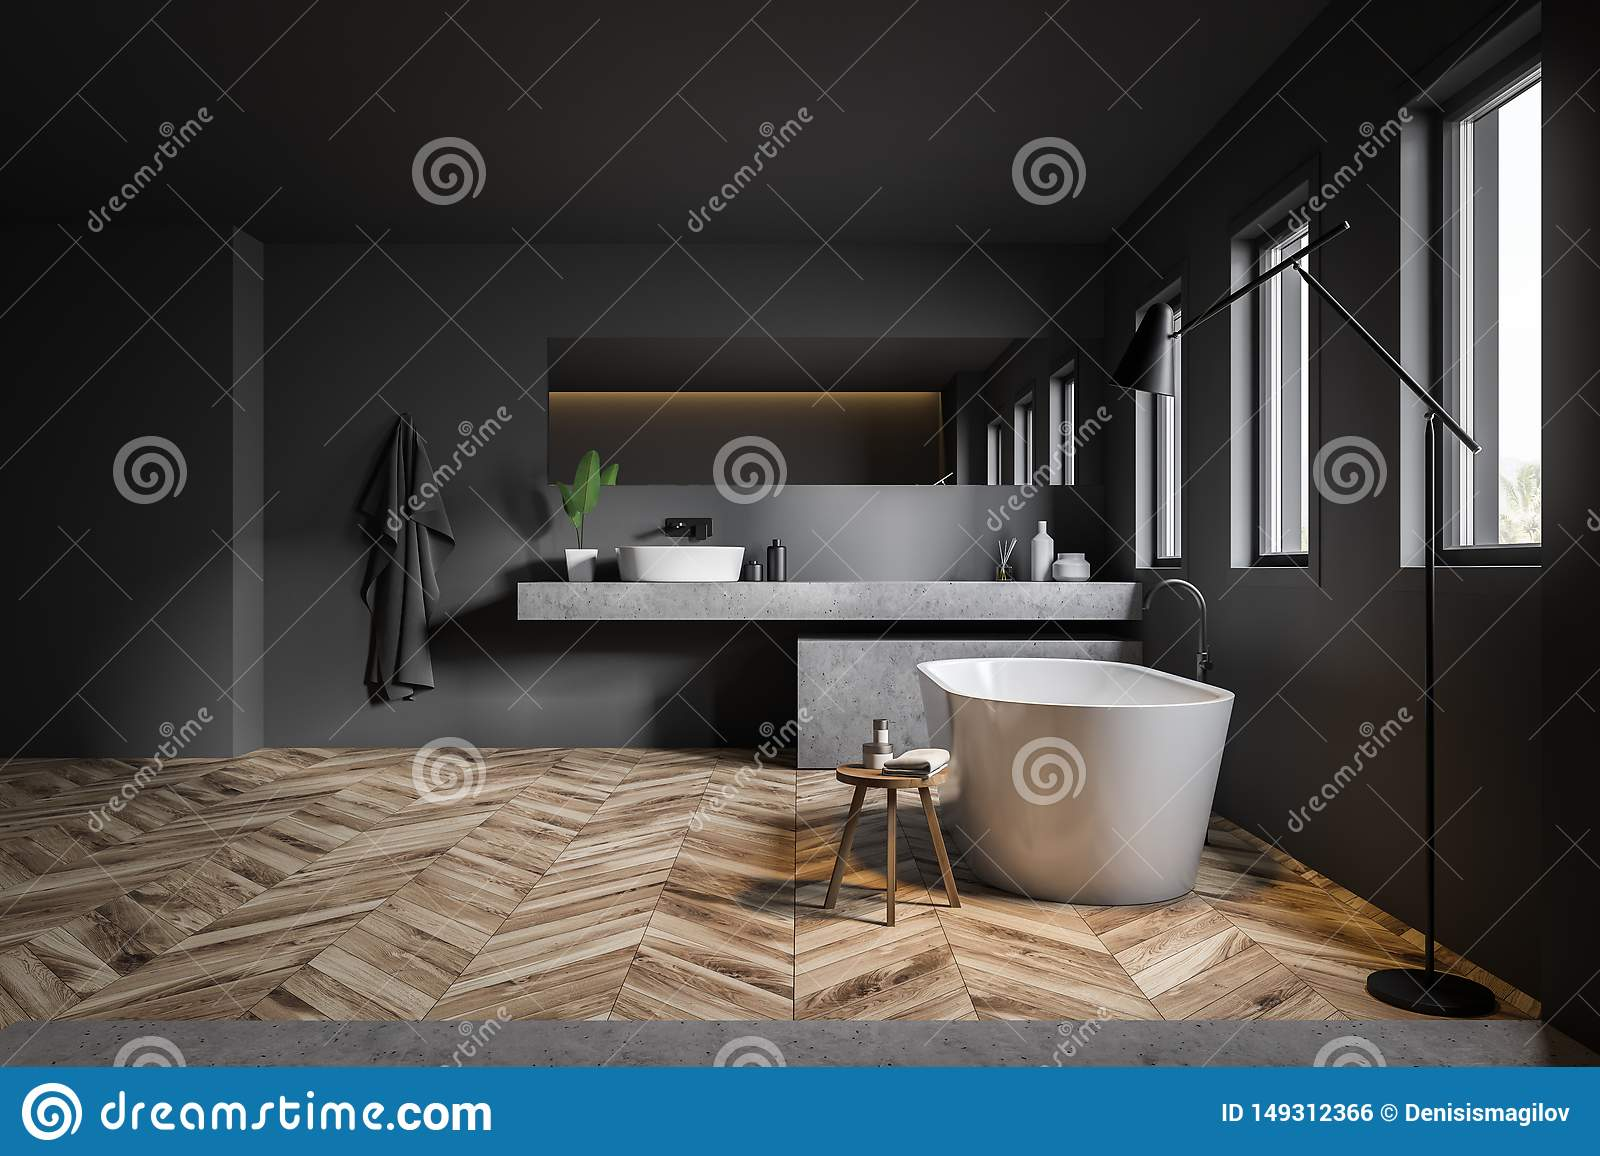 Interior Of Gray Bathroom With Sink And Tub Stock Illustration Illustration Of Home Bathtub 149312366